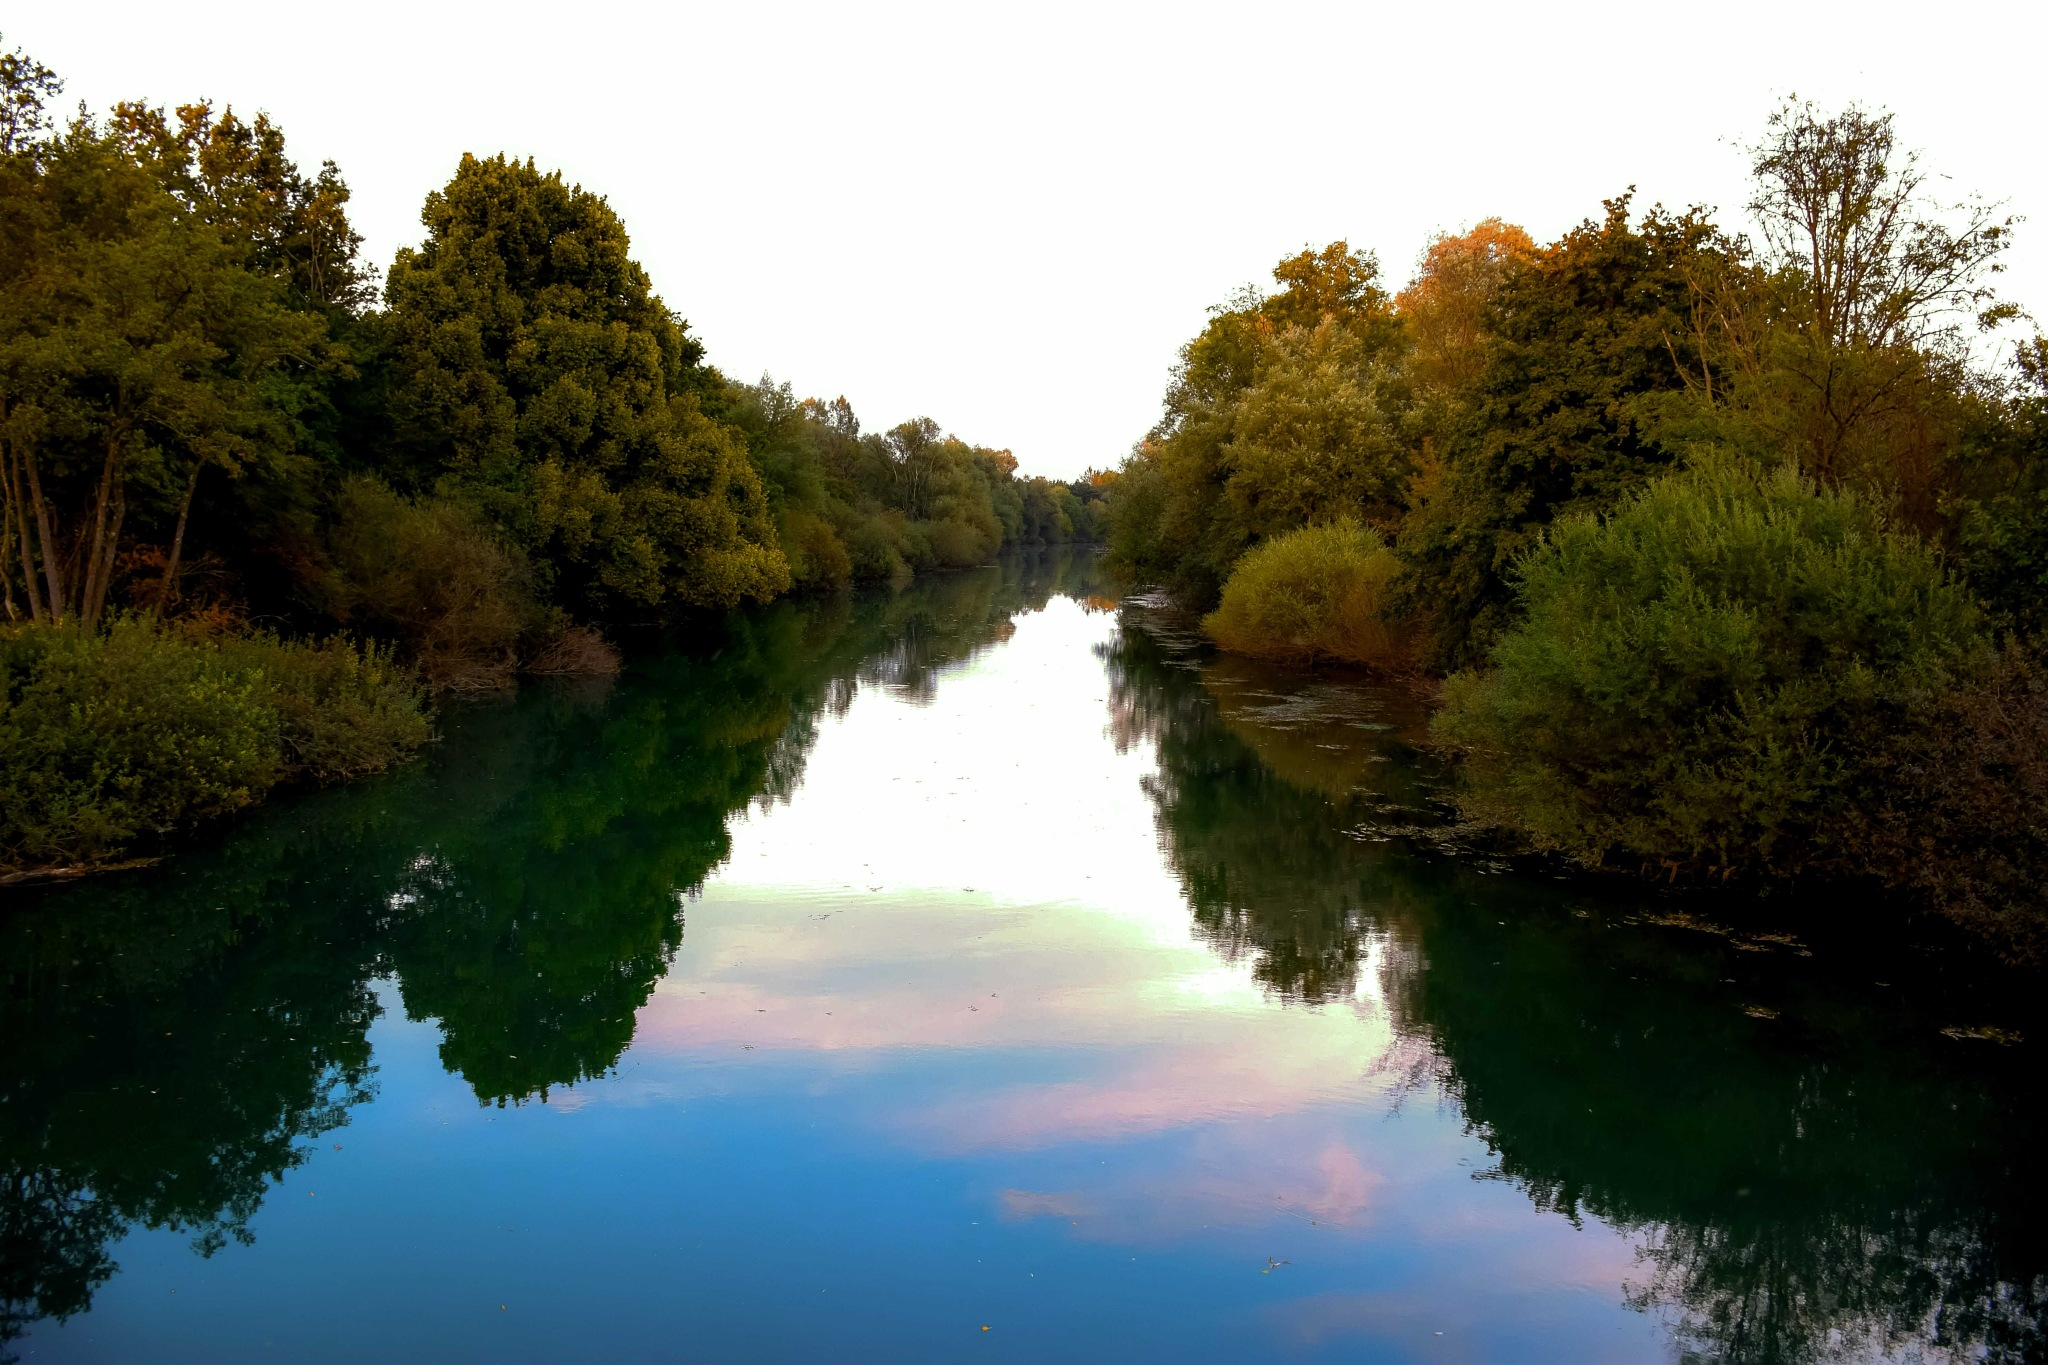 Green River by Alexander